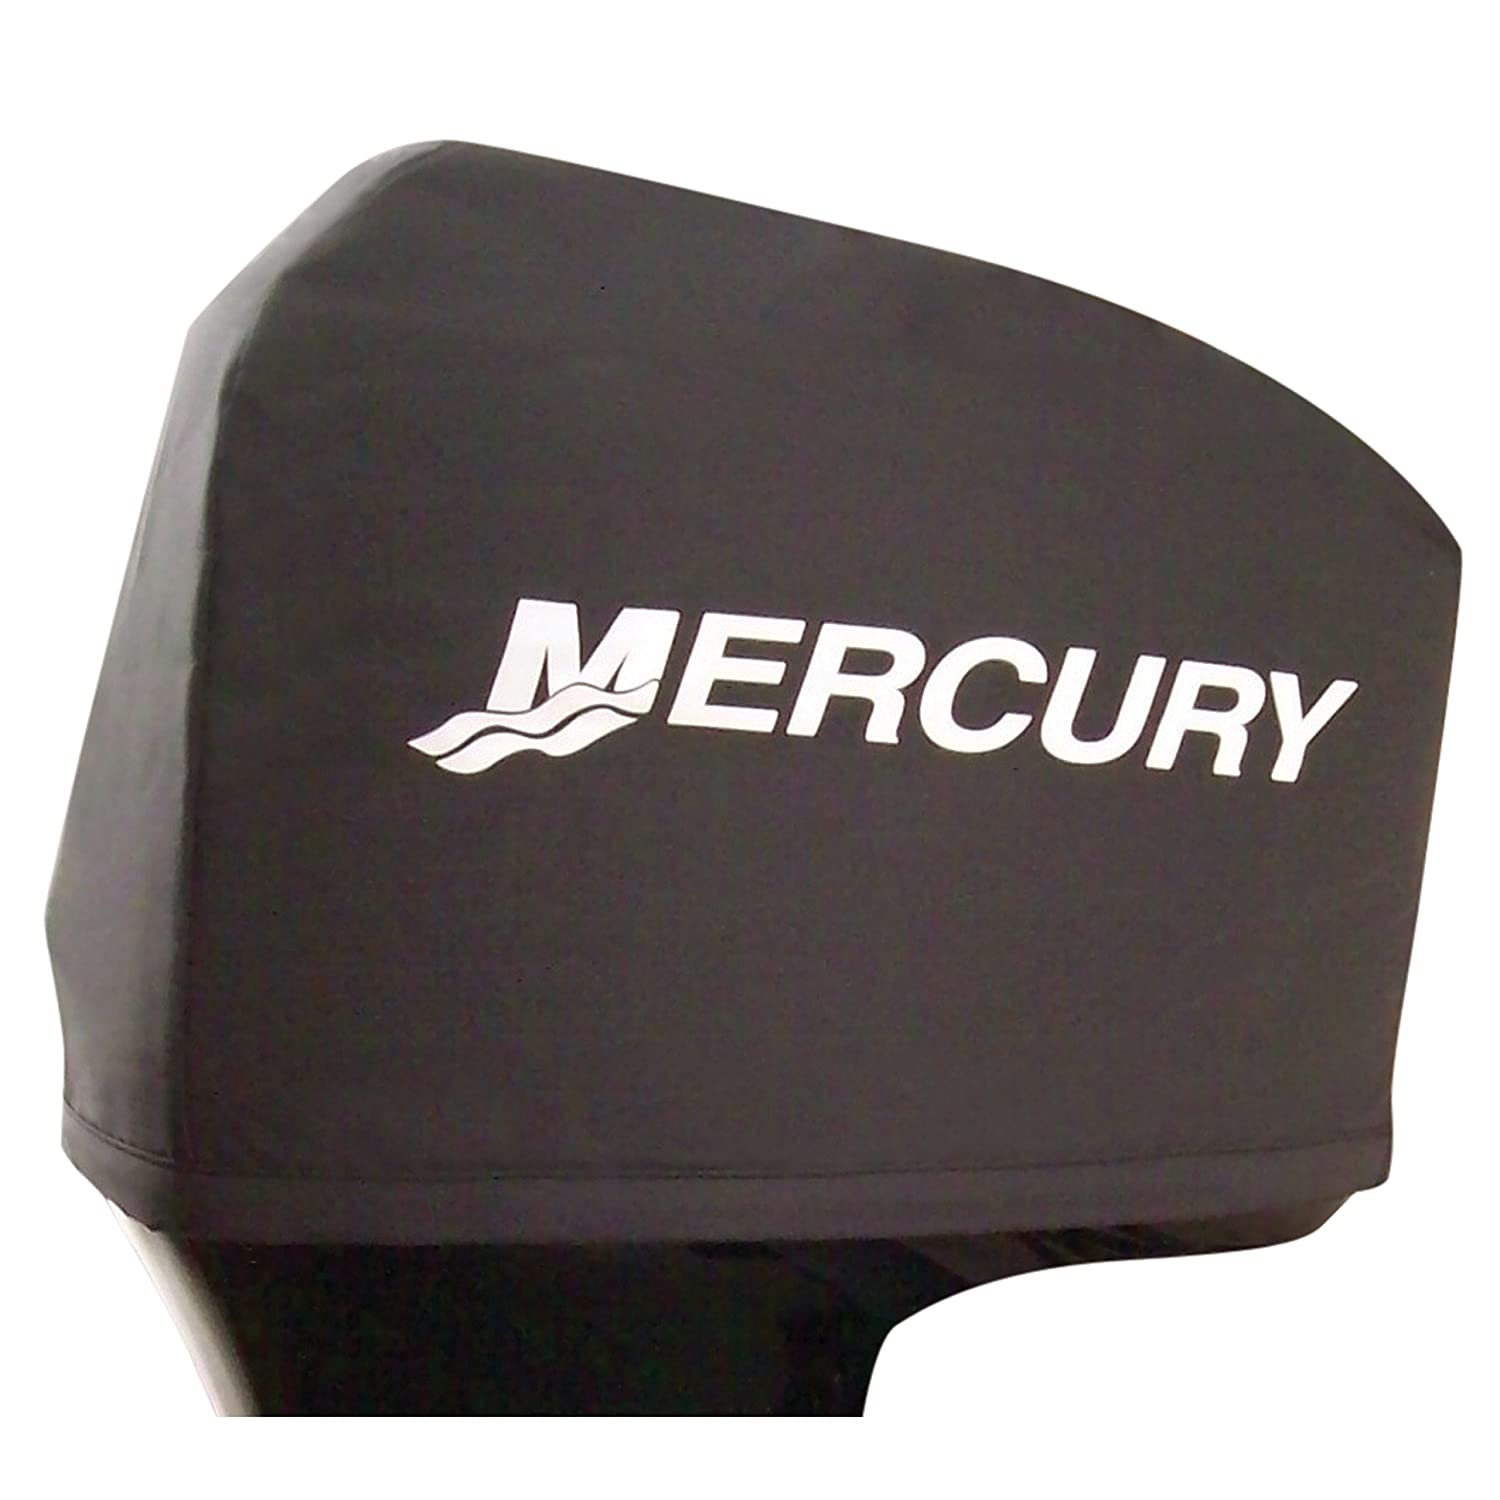 Amazon.com : attwood Custom-Fit Mercury Motor Cover : Boat Covers : Sports  & Outdoors